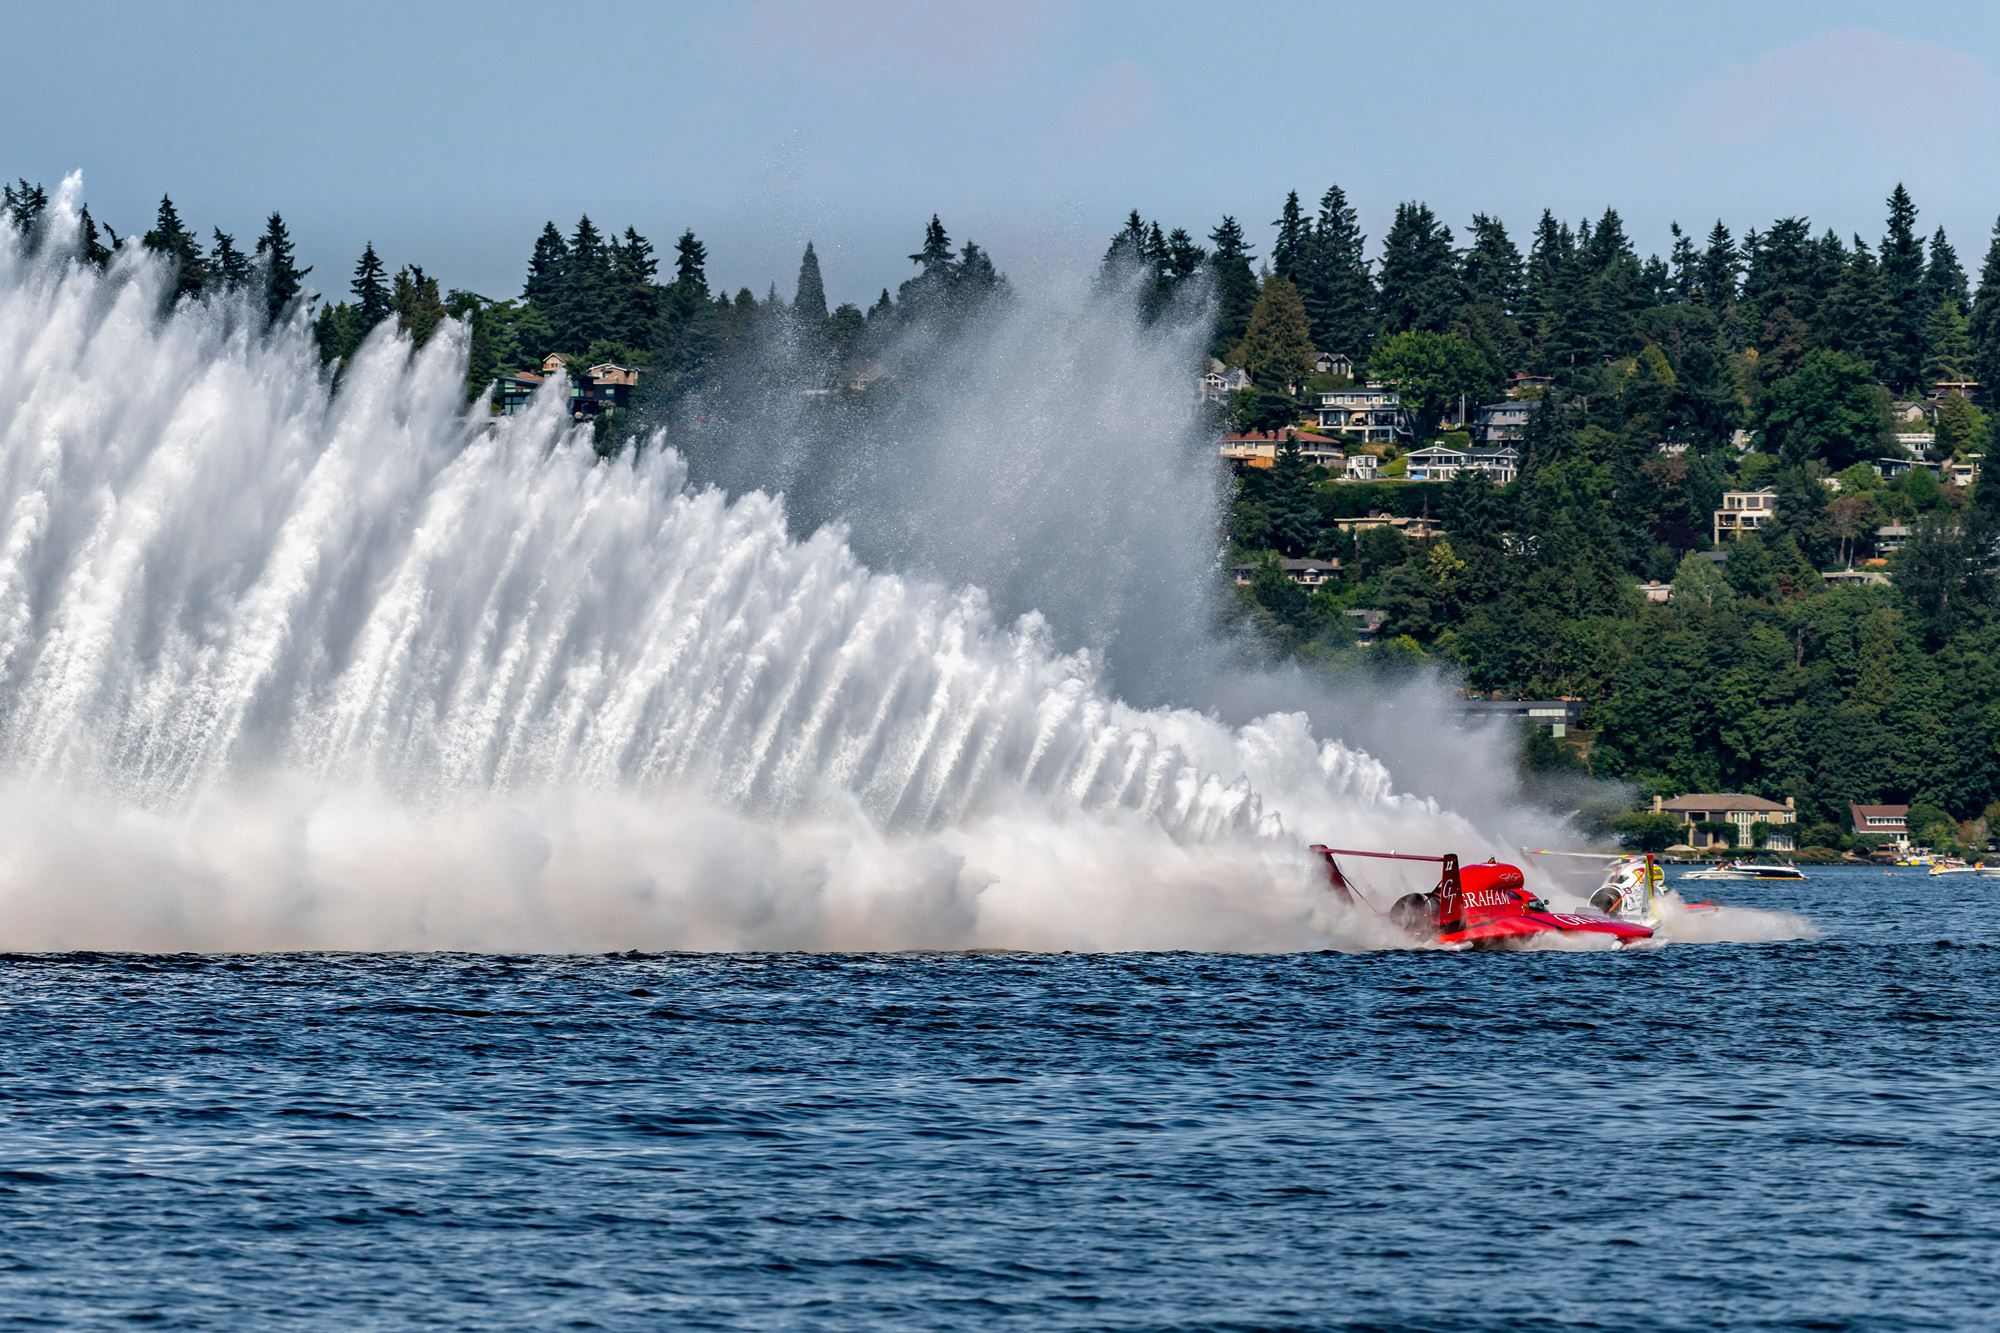 Seafair Weekend Festival